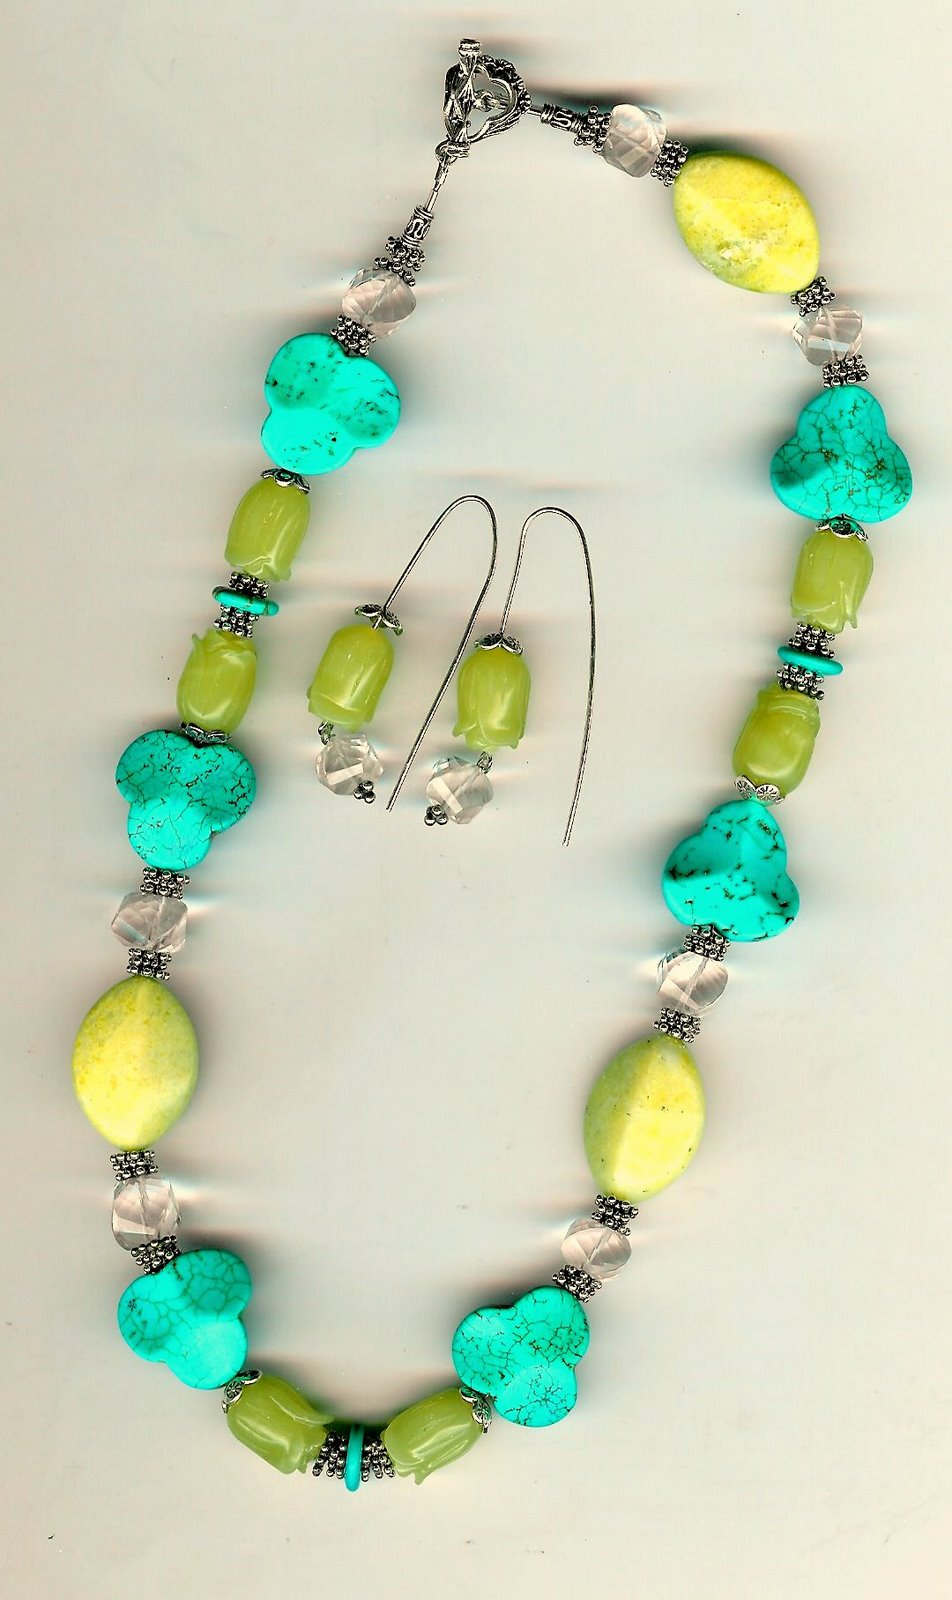 108. Carved Jade, Turquoise, Topaz with Bali Sterling Silver + Earrings